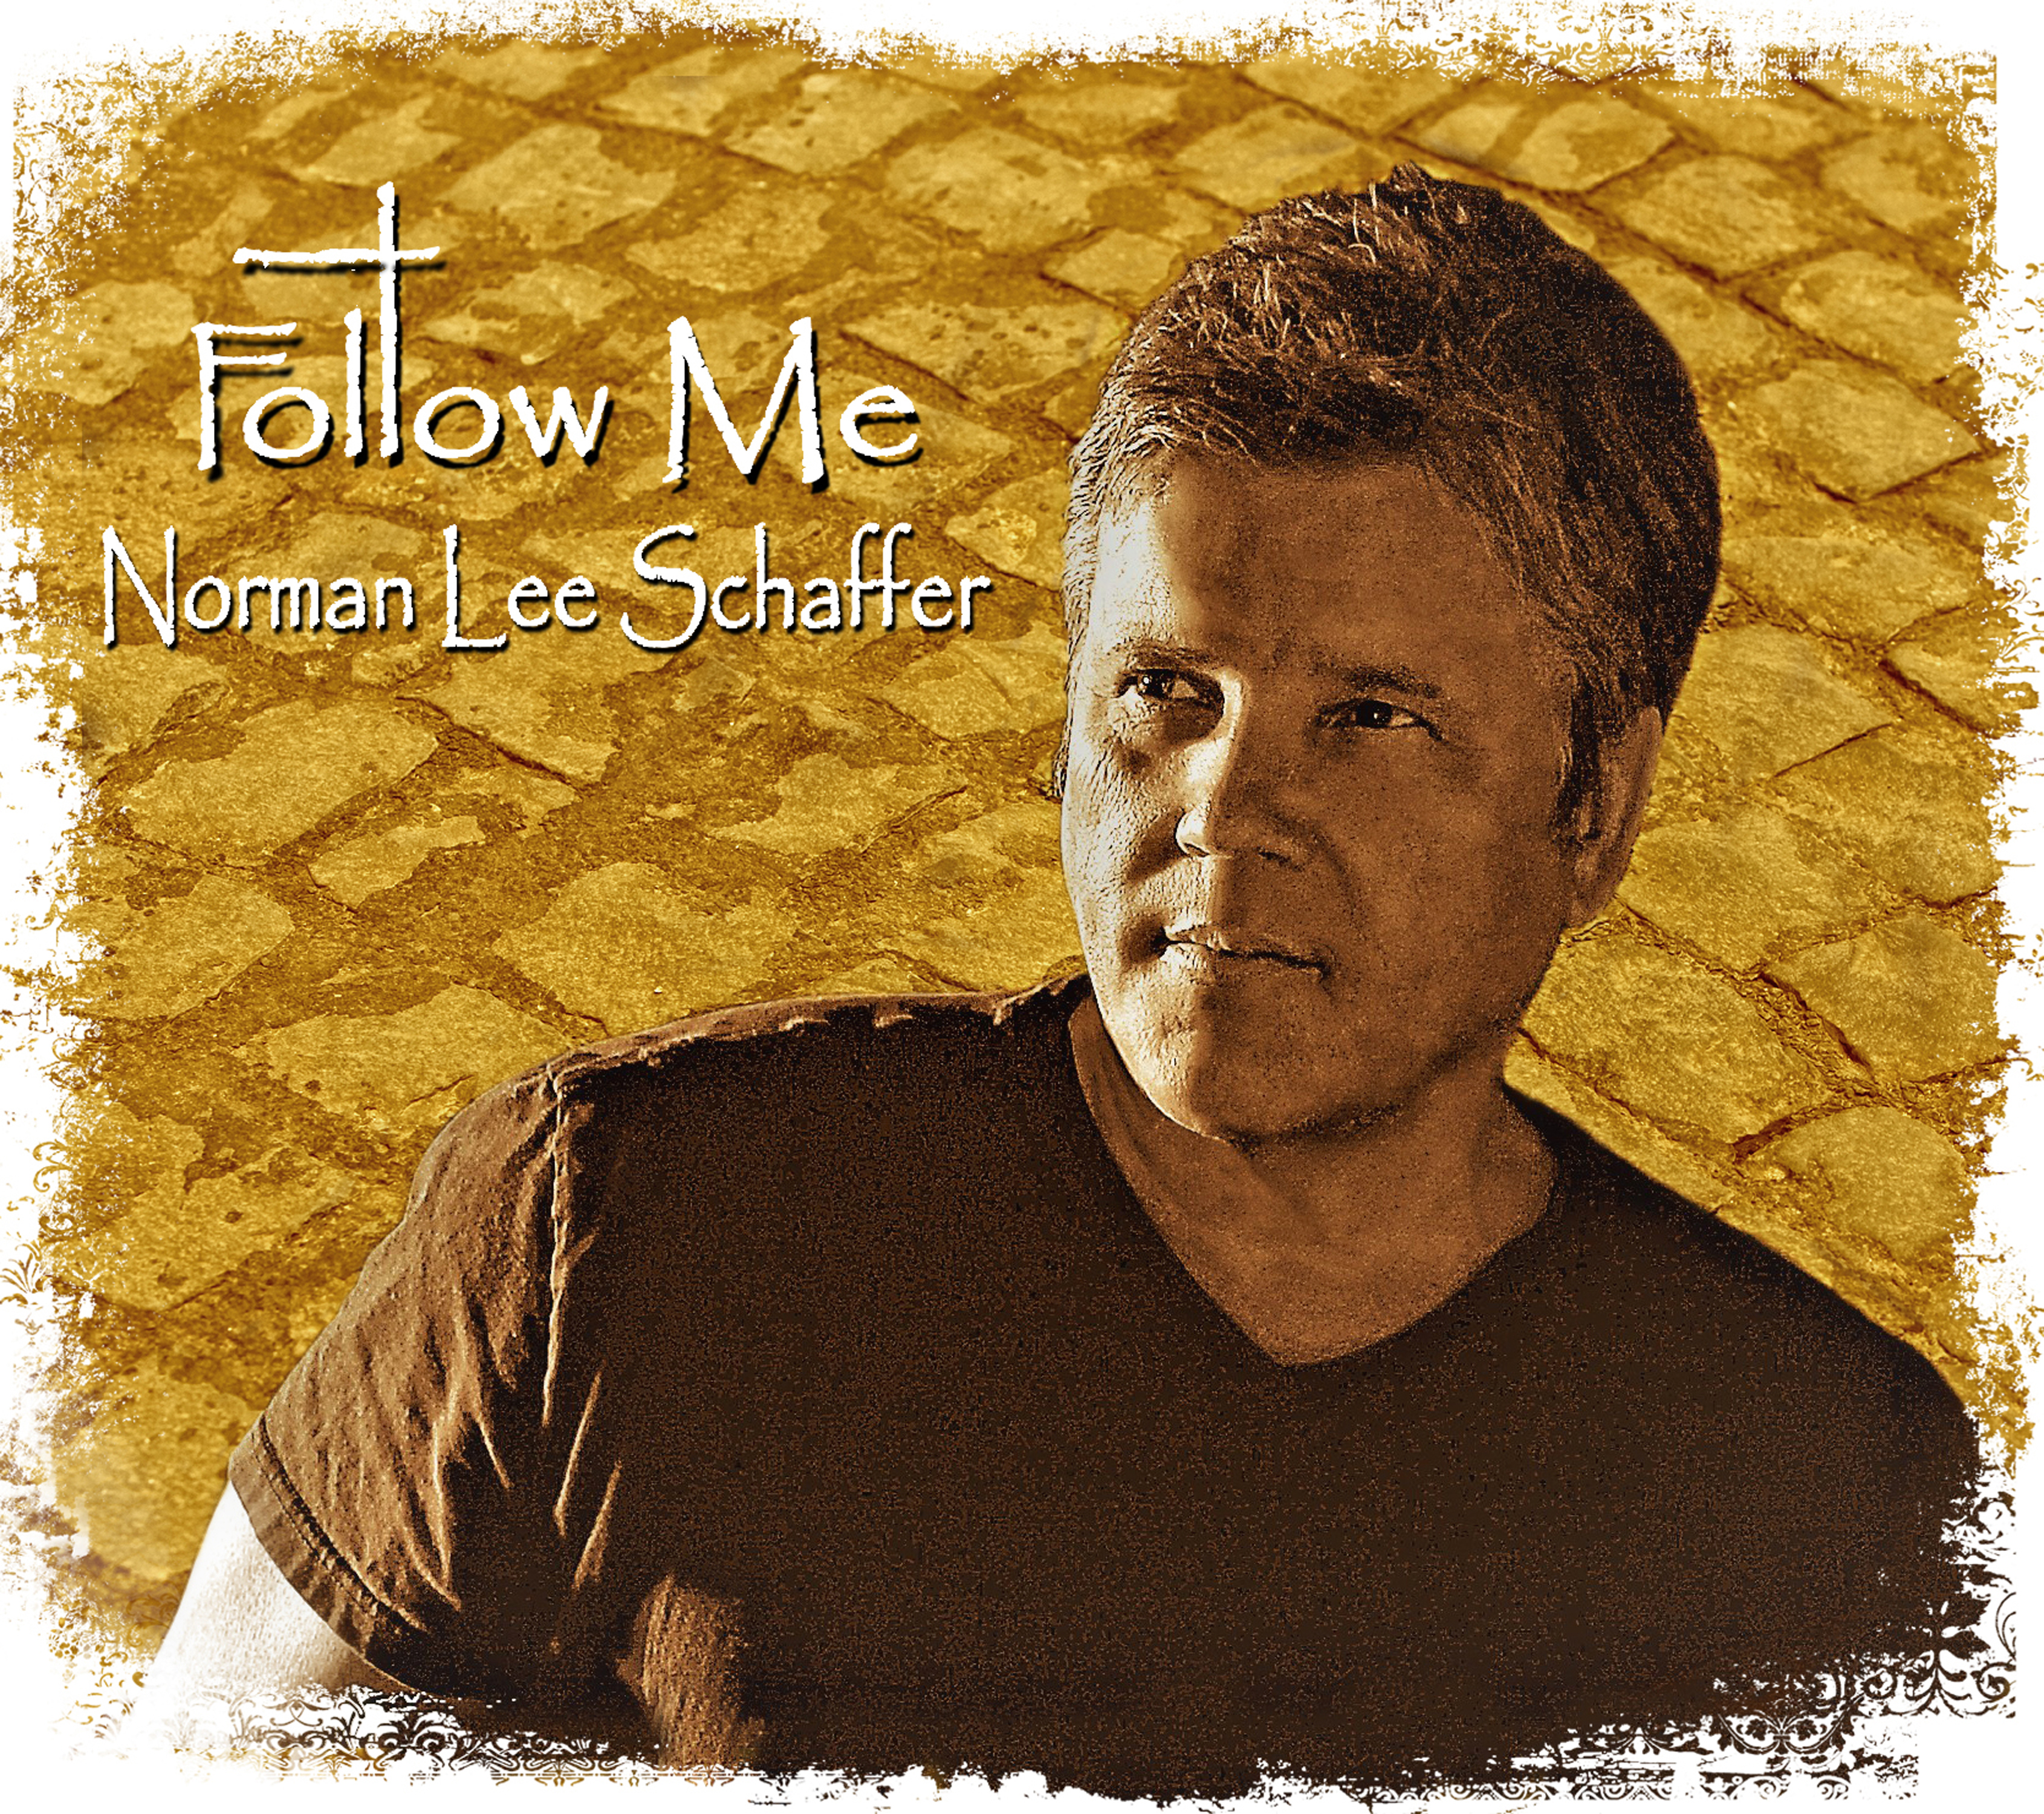 FLORIDA PASTOR NORMAN LEE SCHAFFER RELEASES NEW SINGLE